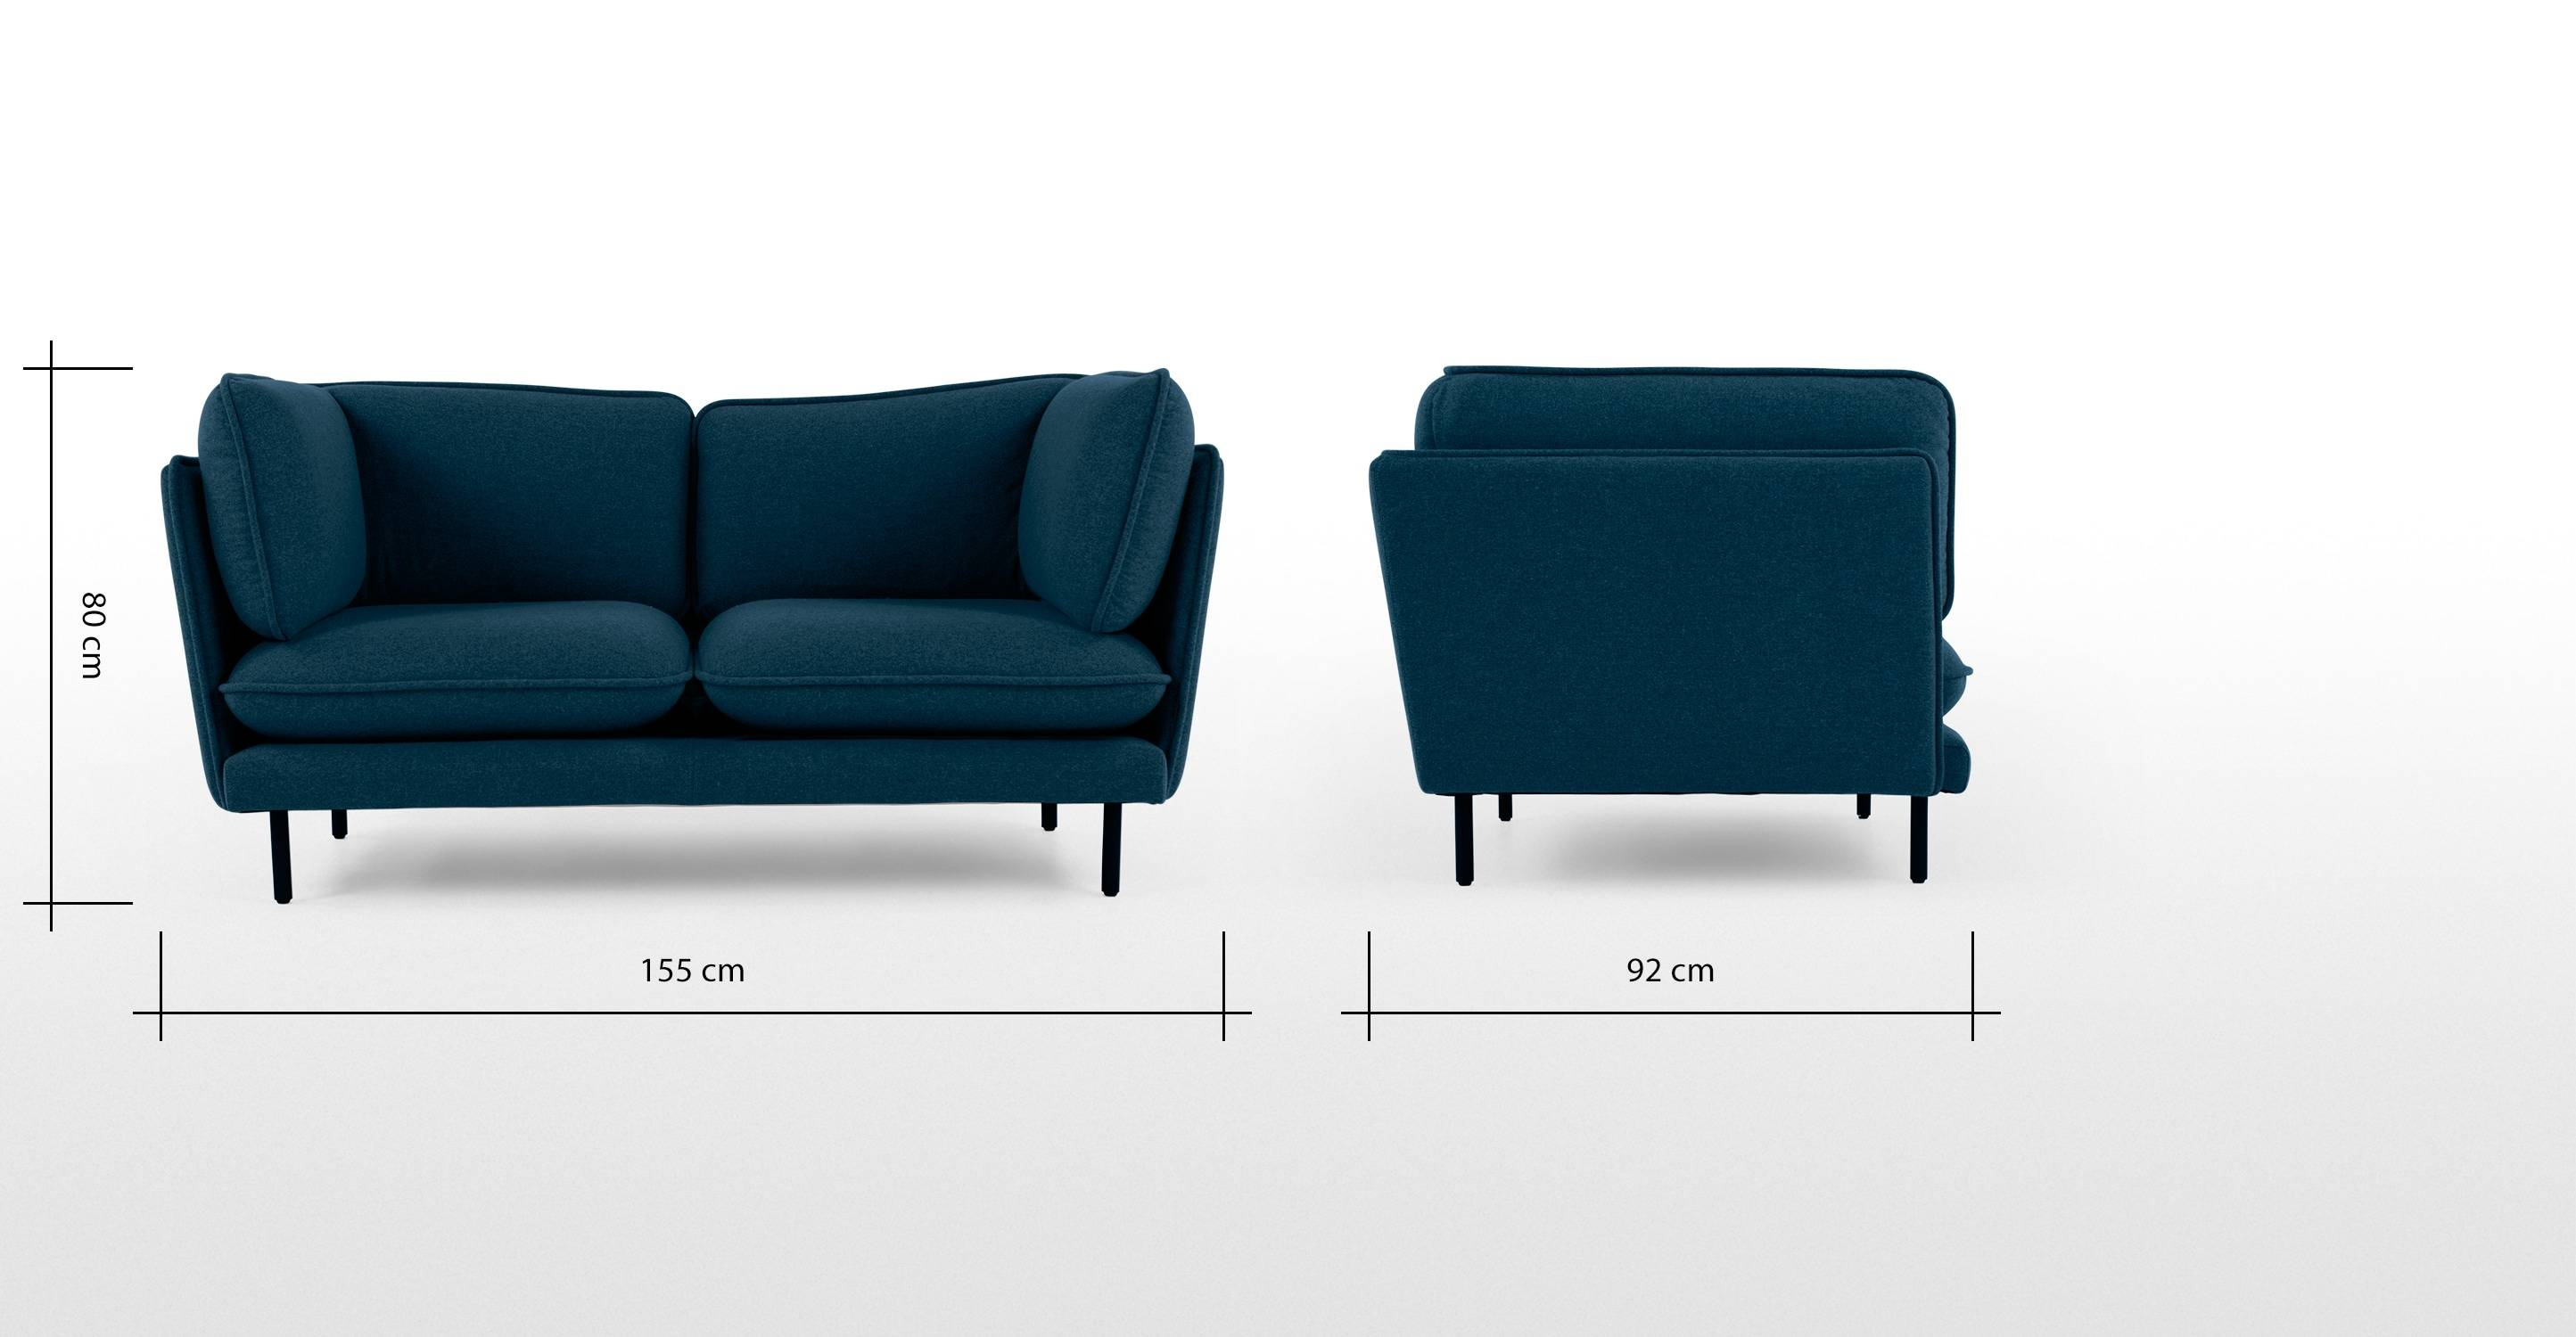 Wes 2 Seater Sofa, Petrol Teal | Made in 2 Seater Sofas (Image 29 of 30)